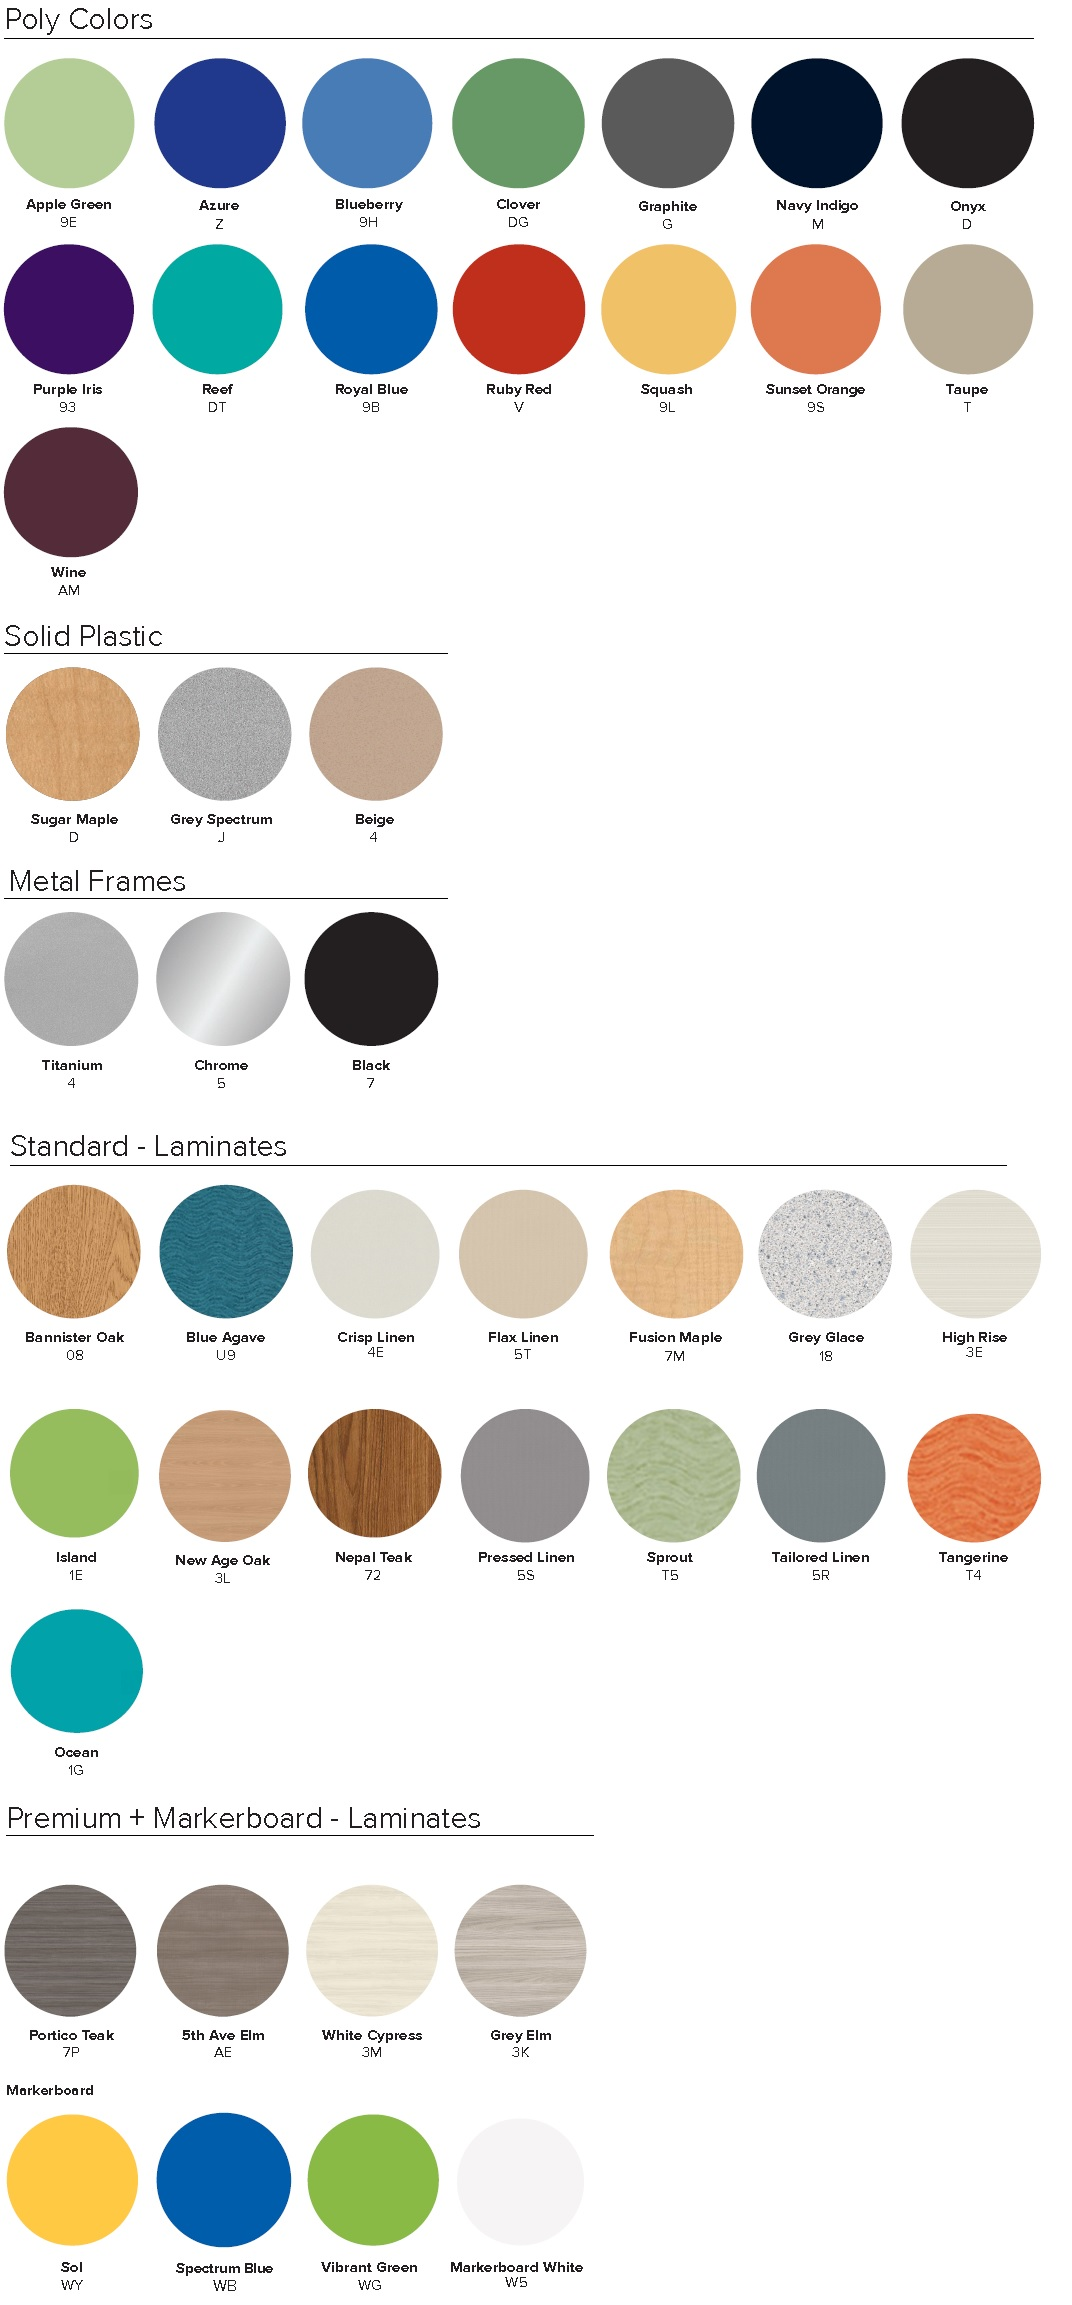 All Artcobell Swatches